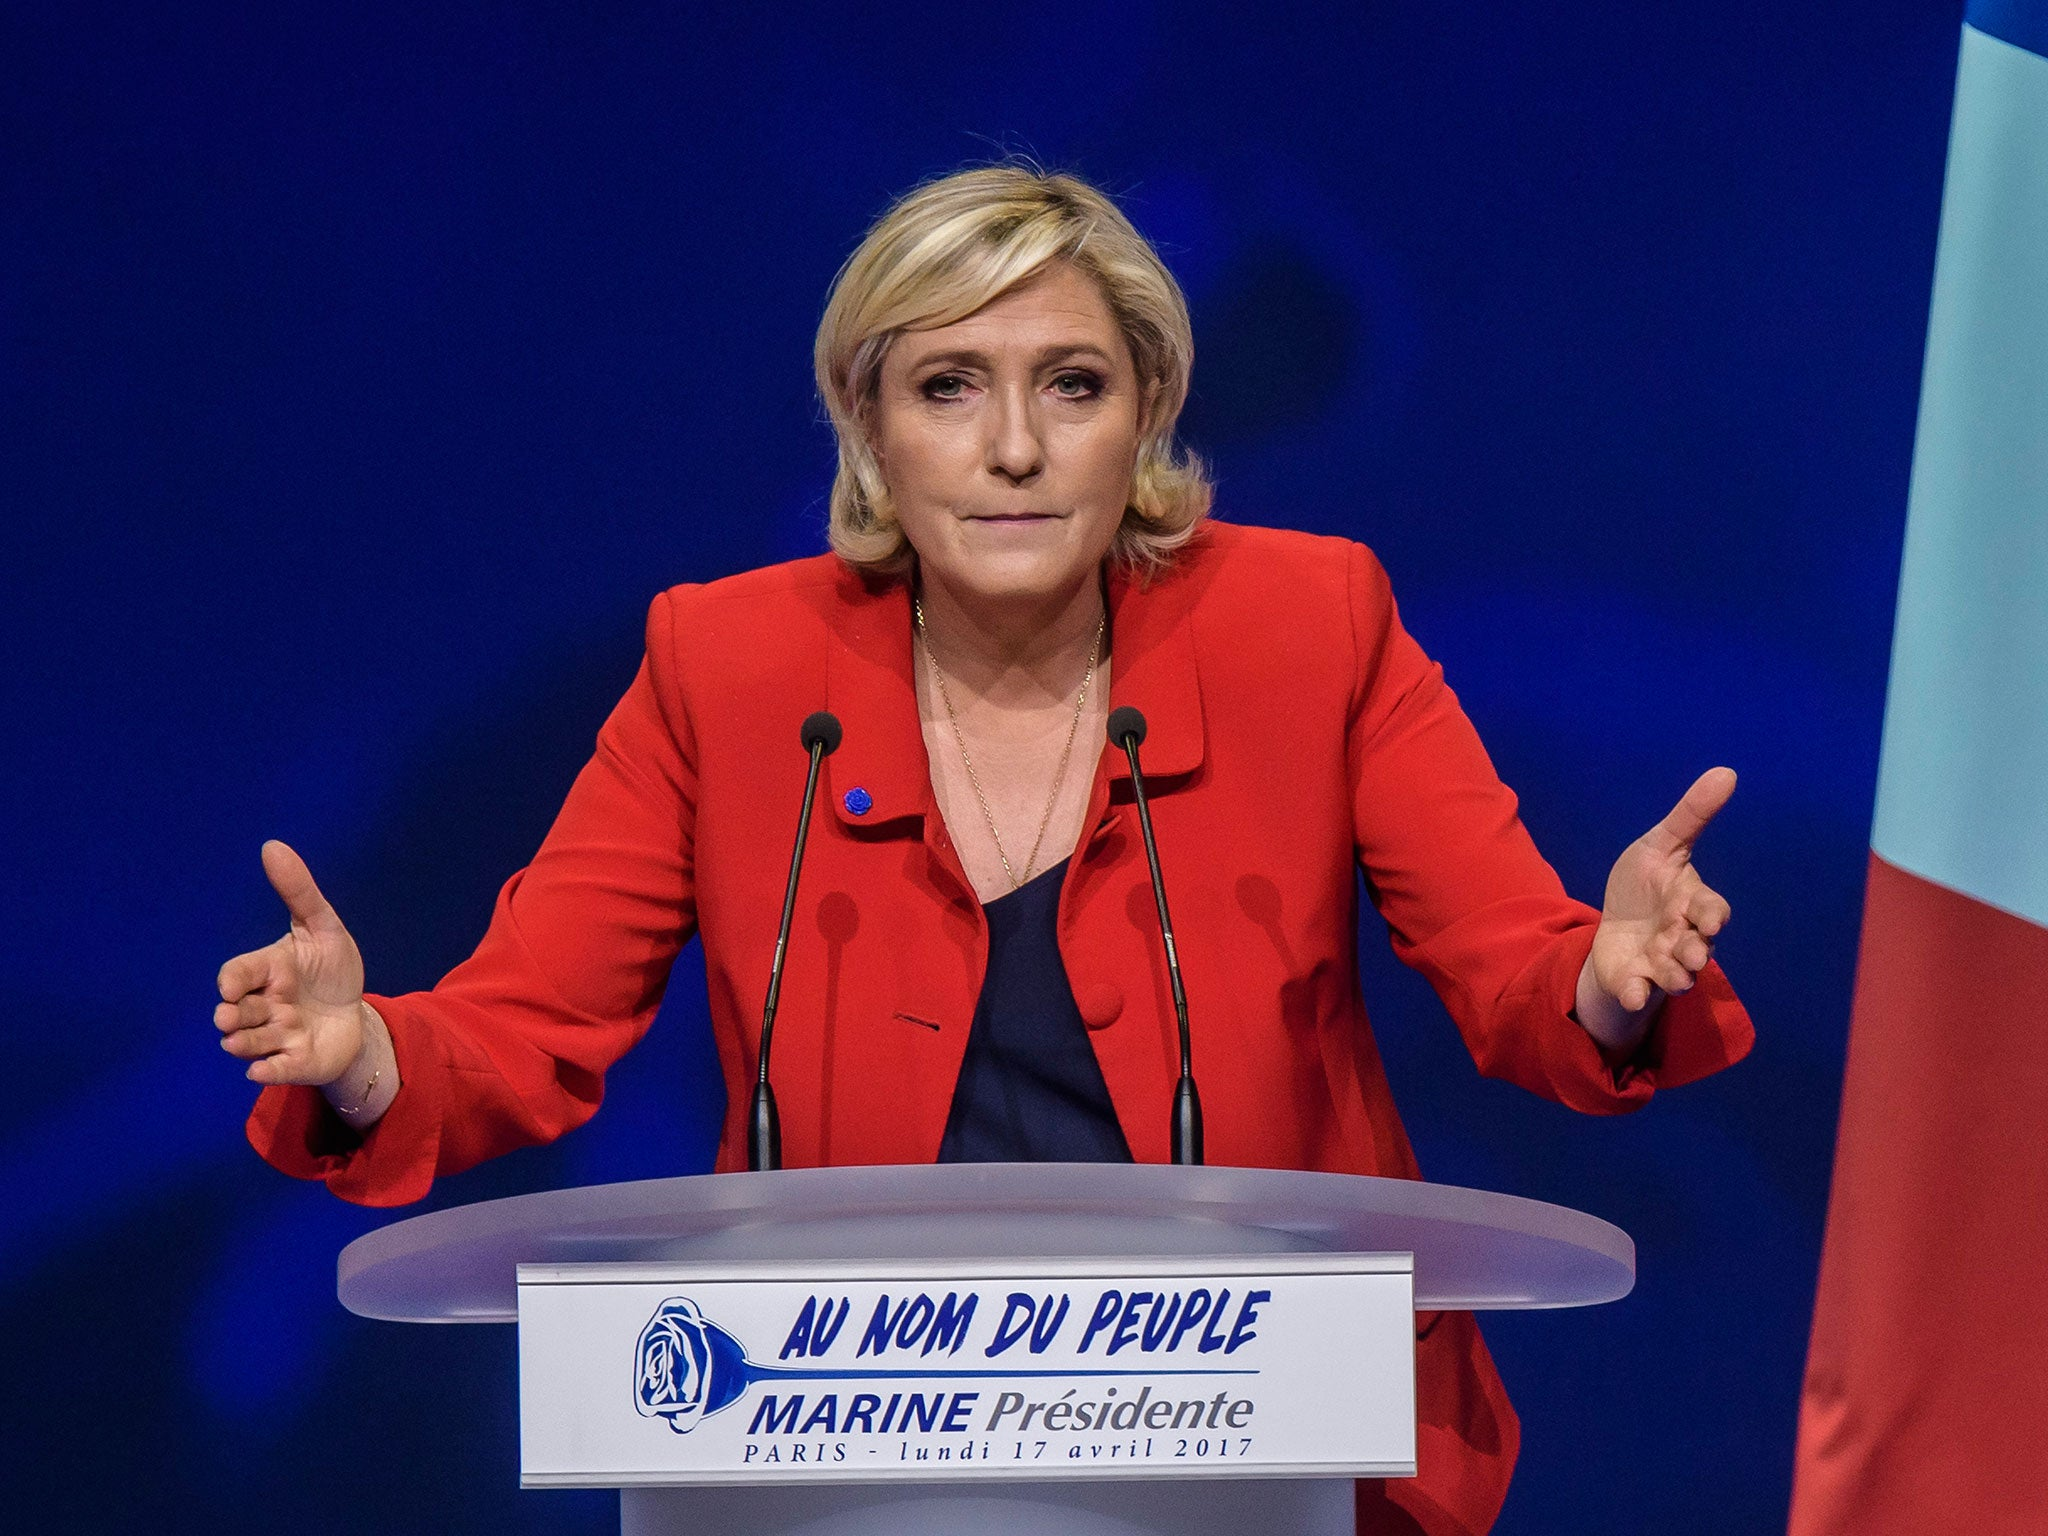 French elections: Marine Le Pen vows to suspend immigration to 'protect France'